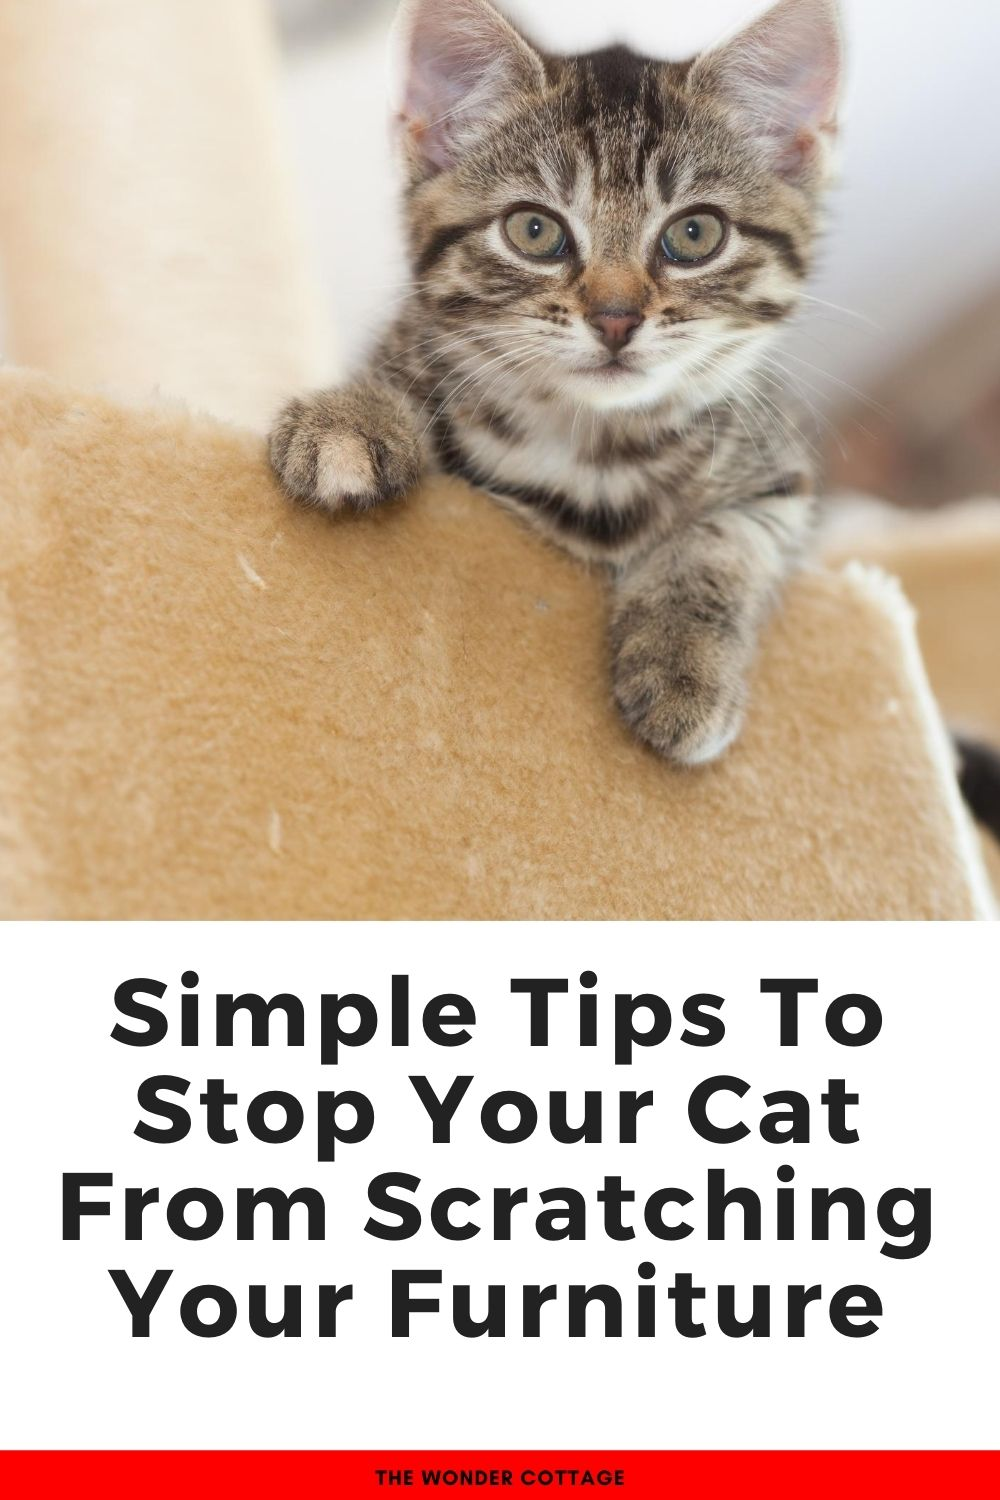 Simple tips to stop your cat from scratching your furniture